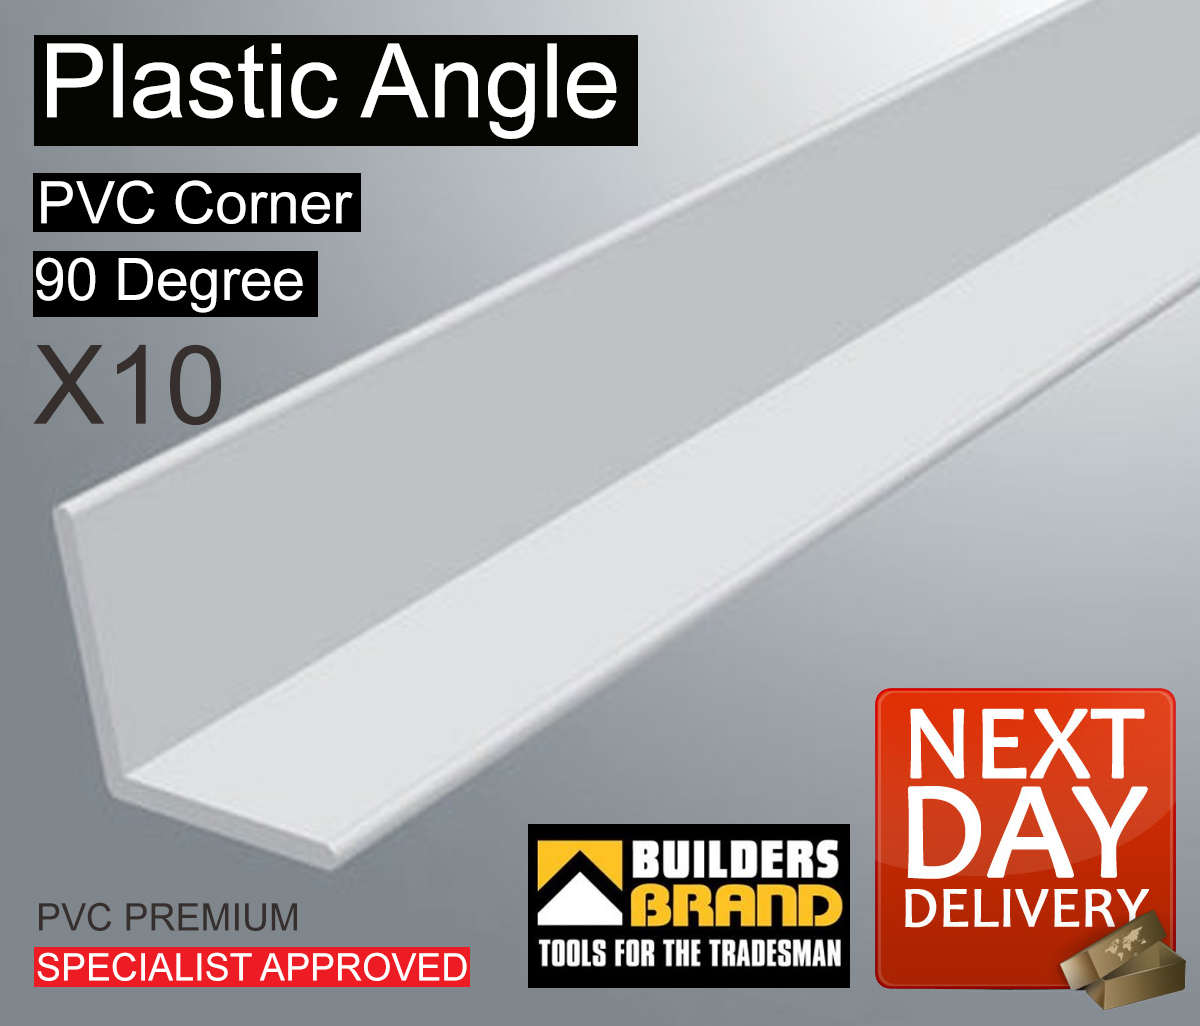 Modern White House With Integrated Angles And Corners: 10x WHITE PLASTIC PVC CORNER 90 DEGREE ANGLE TRIM ALL SIZE